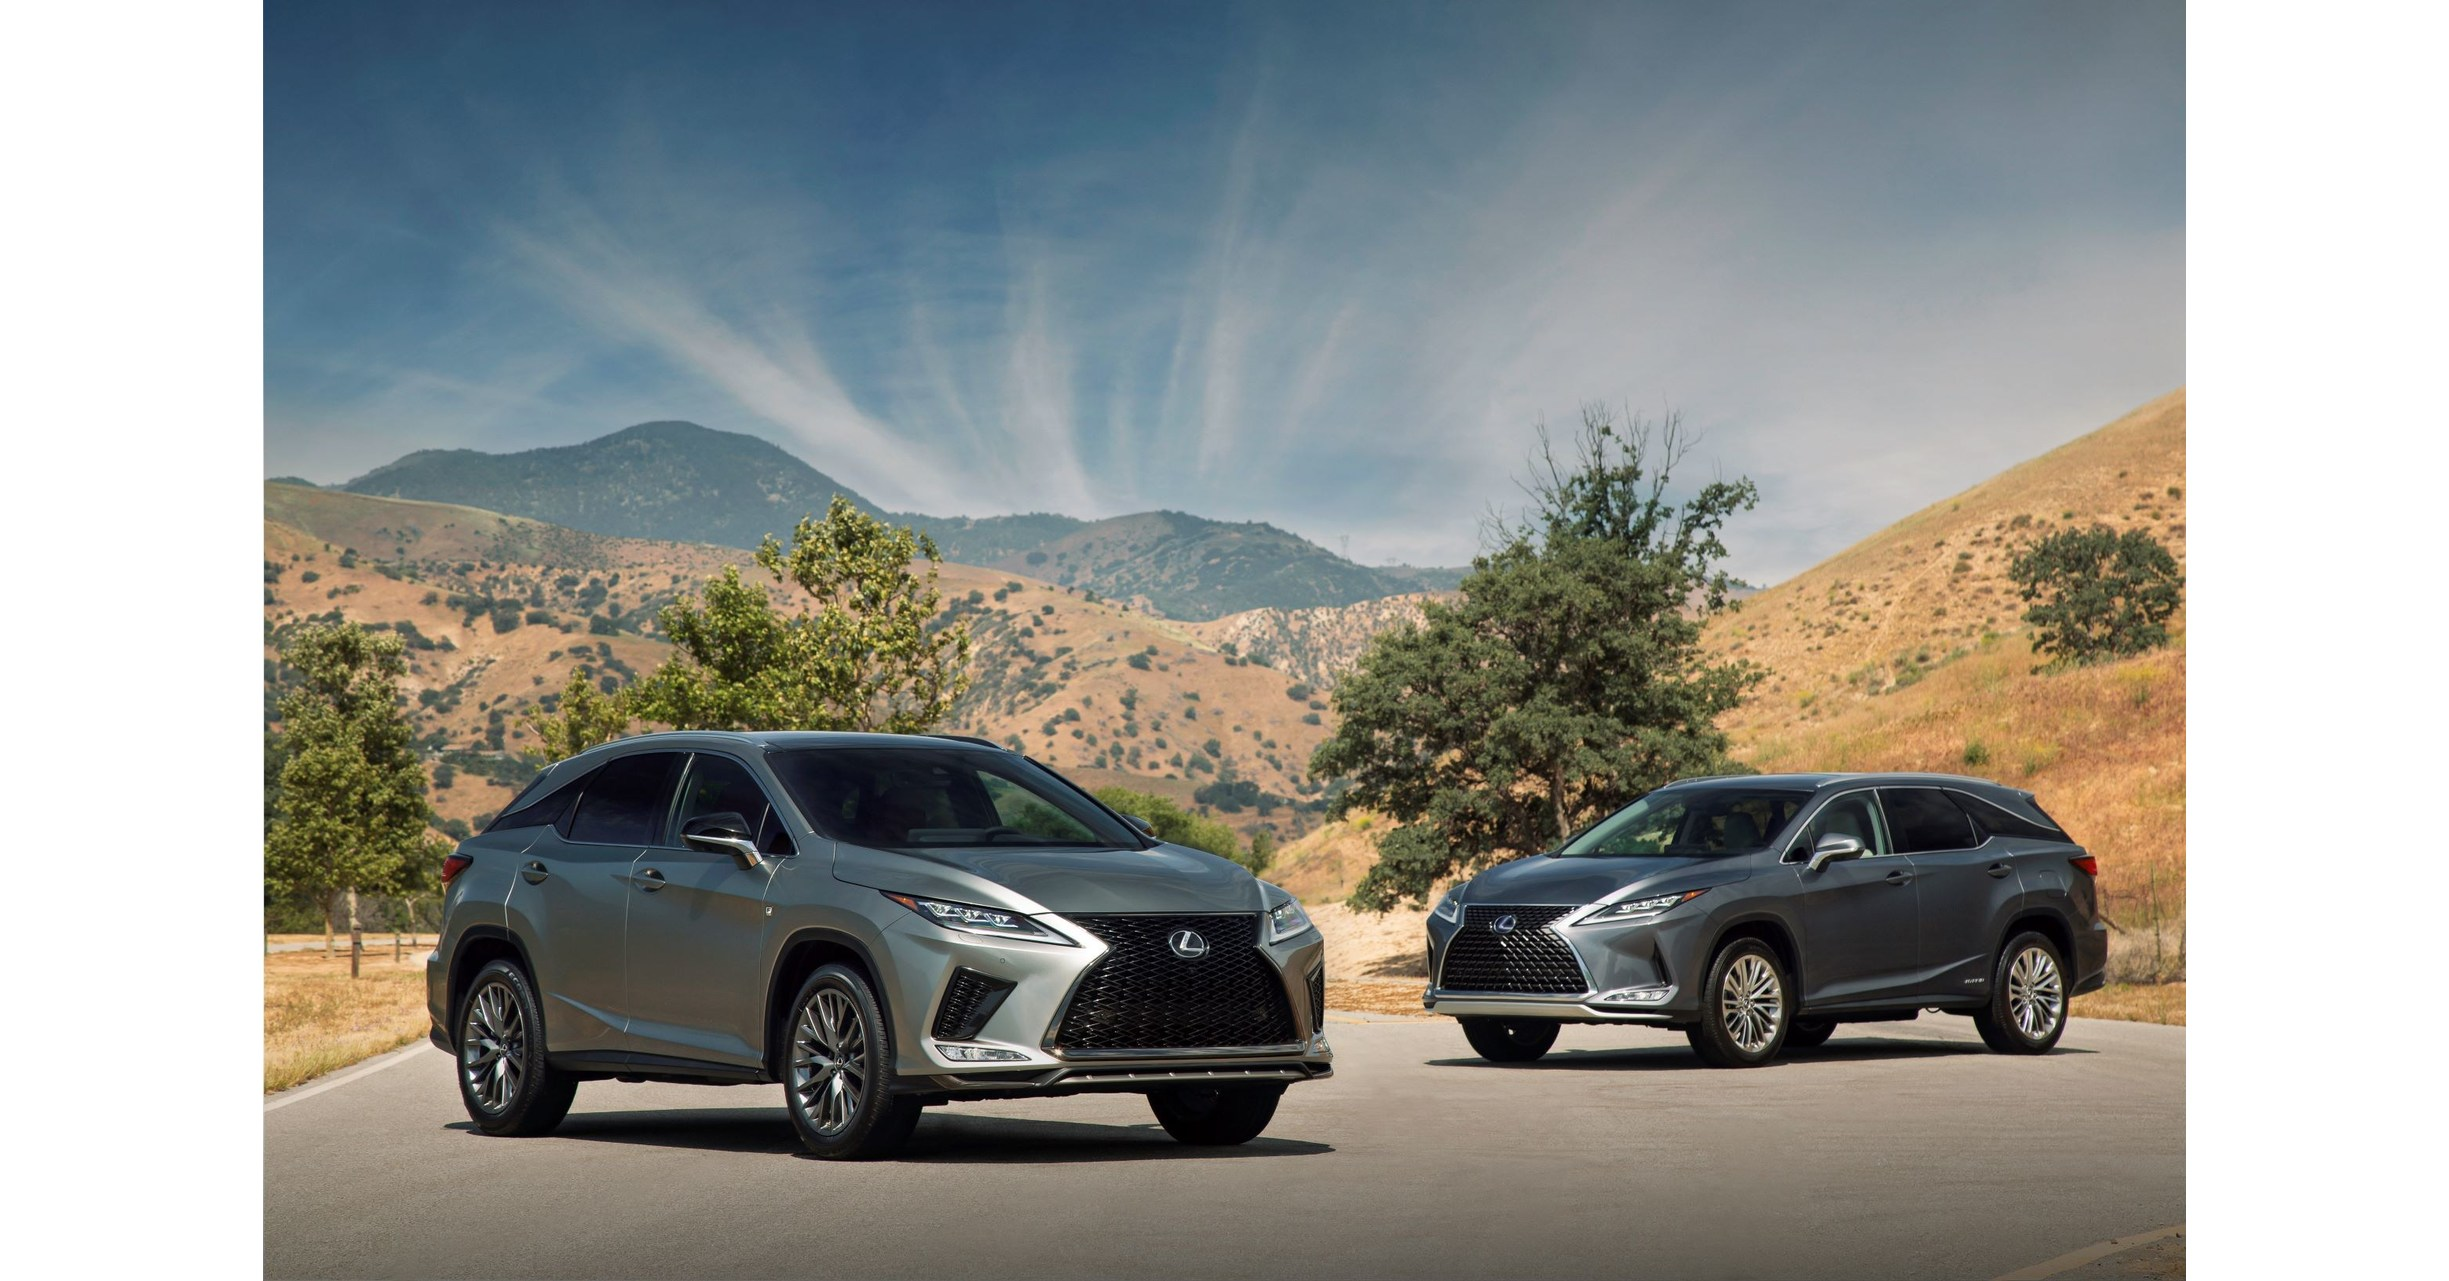 2021 Lexus Rx 350 F Sport Suv Concept and Review